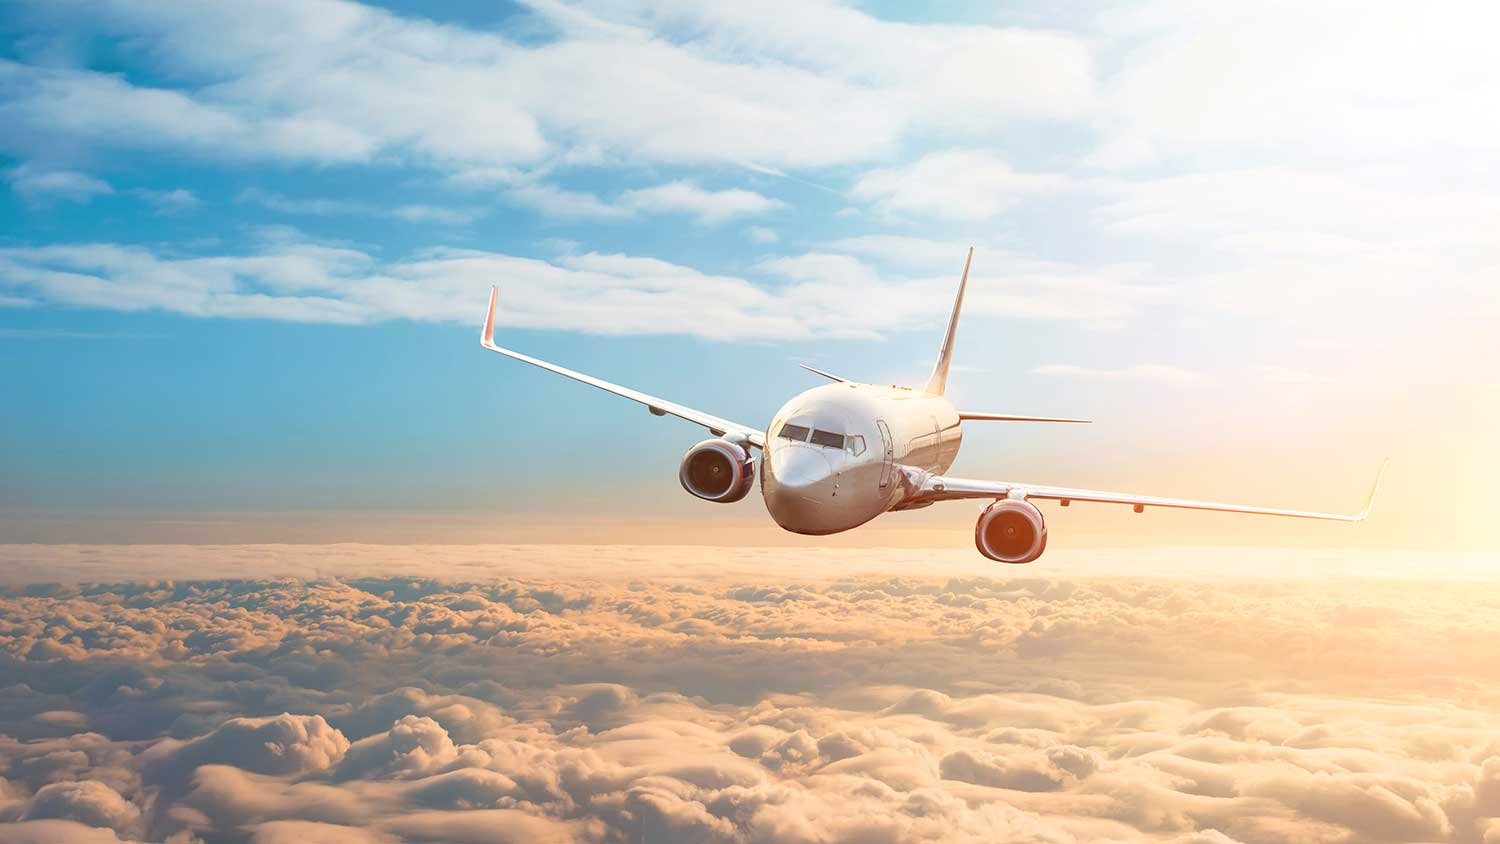 A plane glides above the clouds, the sun is bright in the background